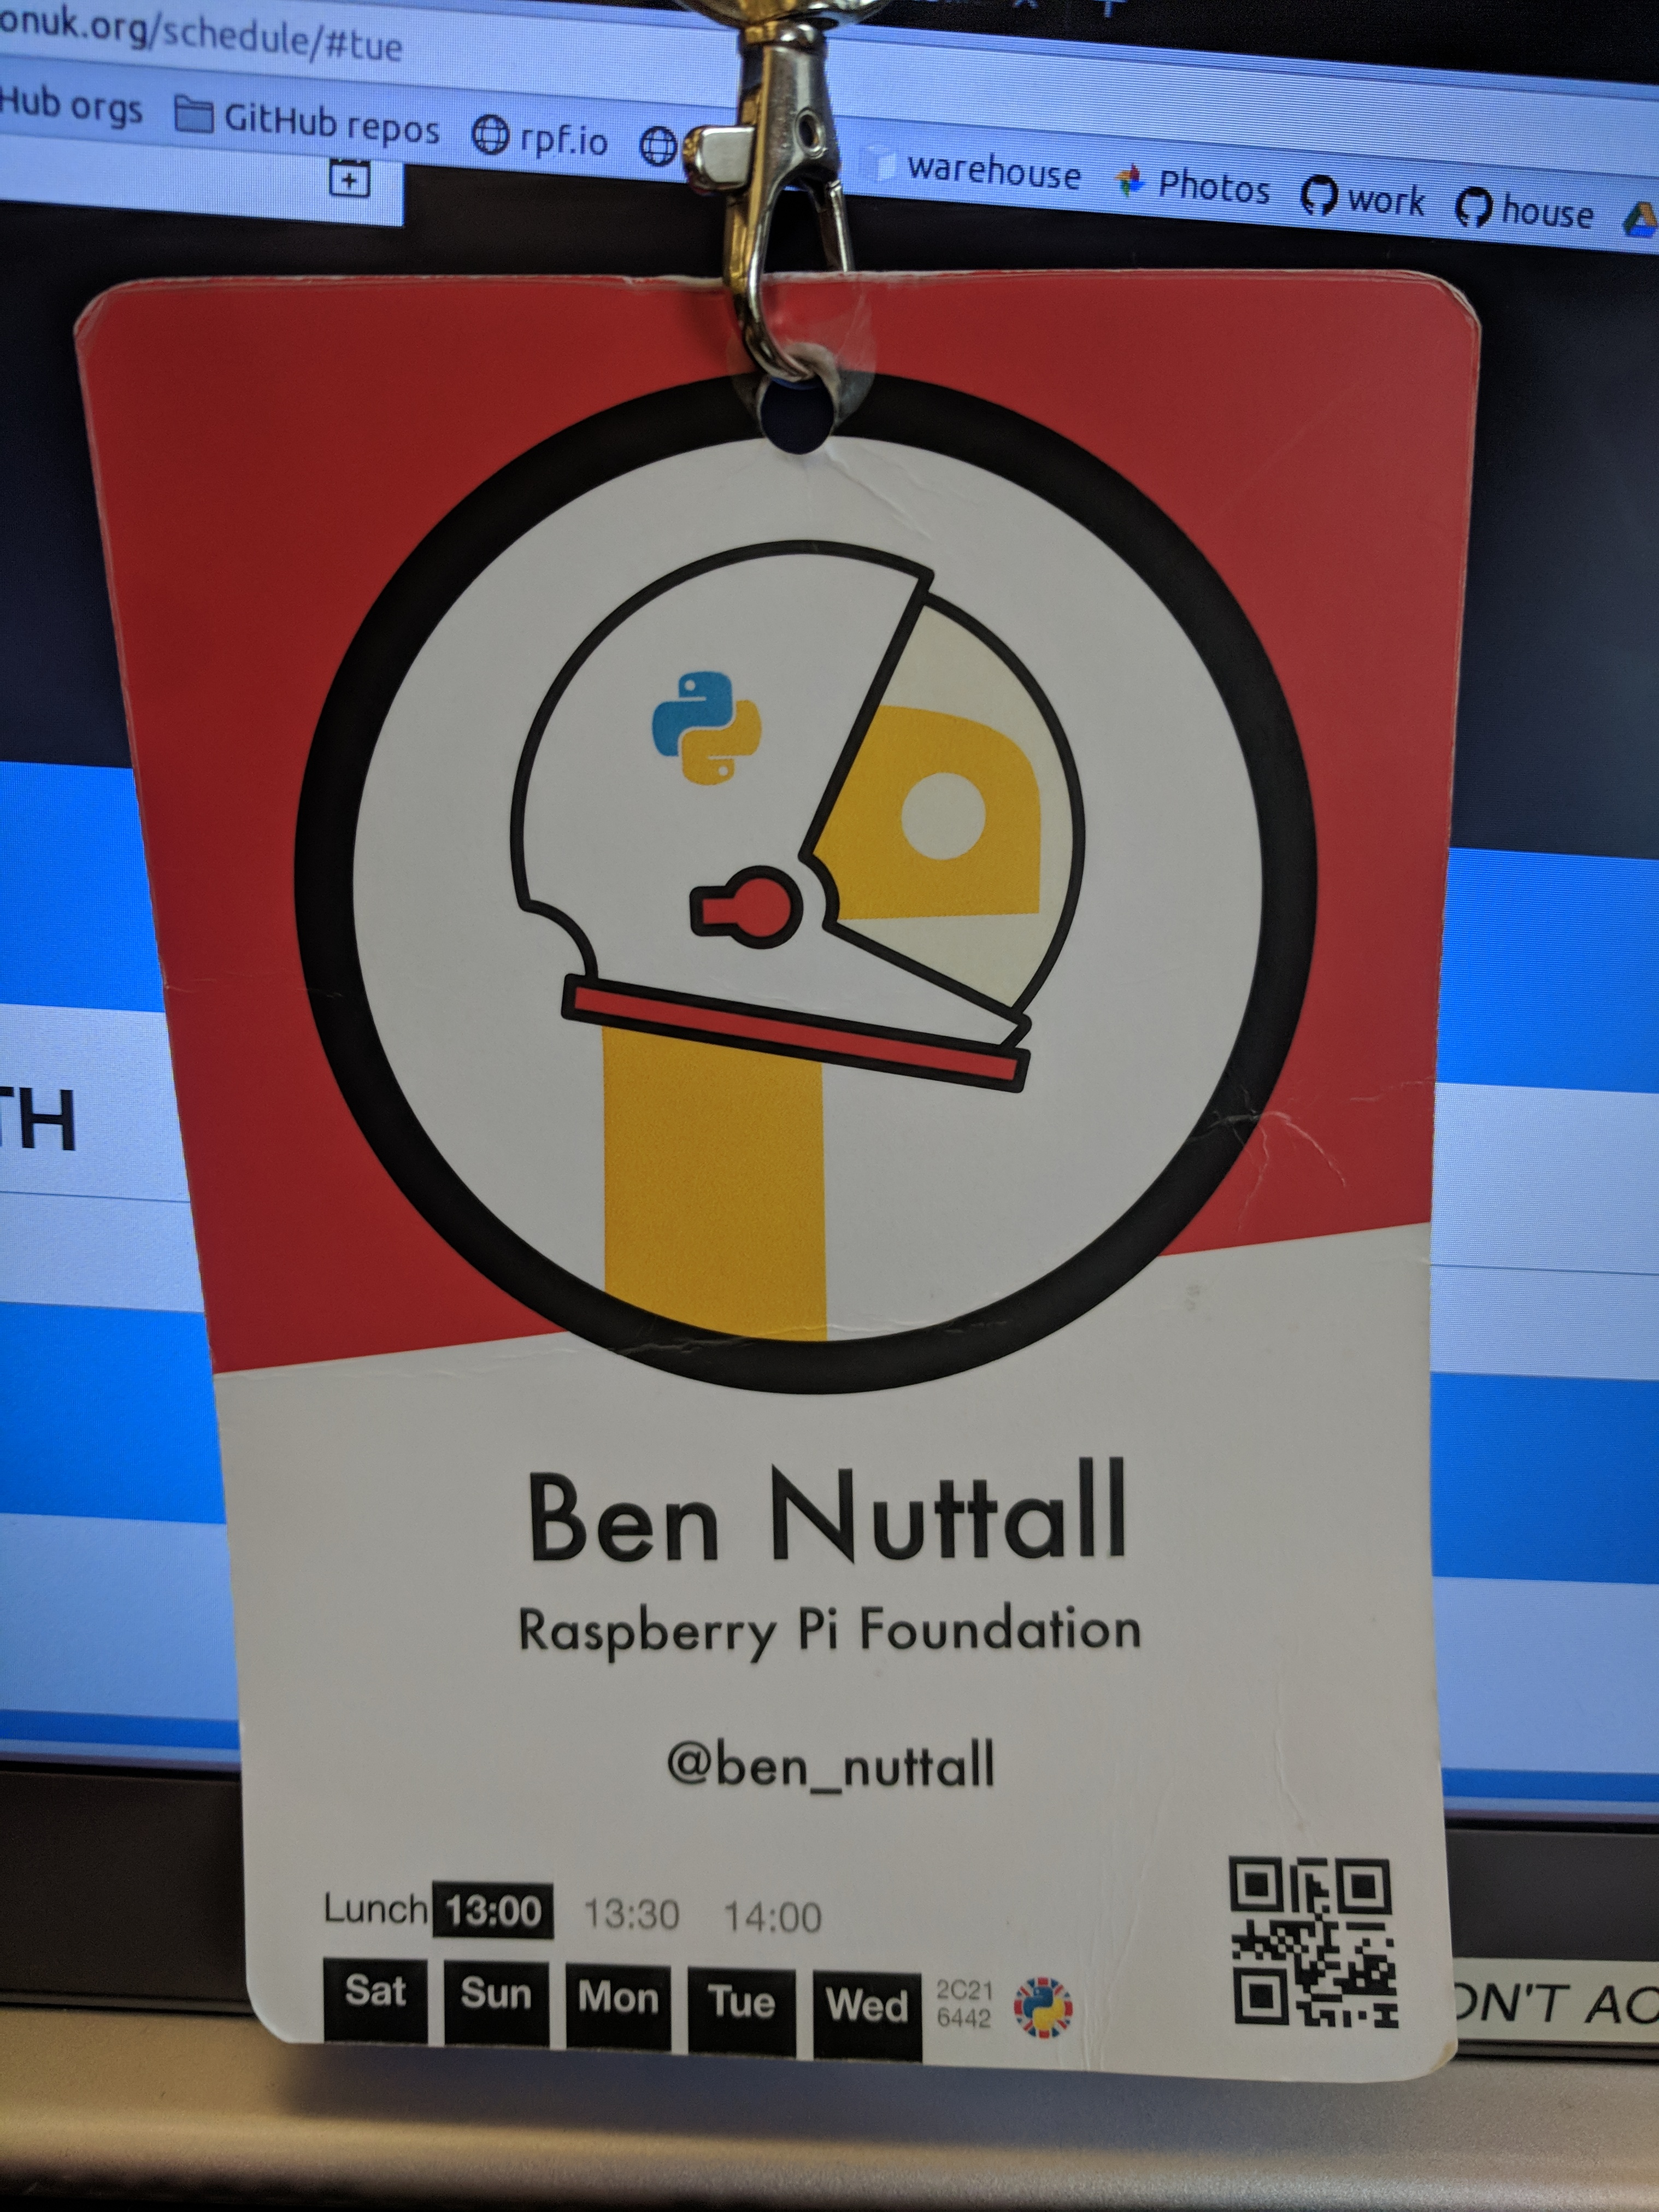 Blog Ben Nuttall Wiringpi Ubuntu I Presented A New Iteration Of My Python And Raspberry Pi Poster At Both Conferences This Year Click To Download